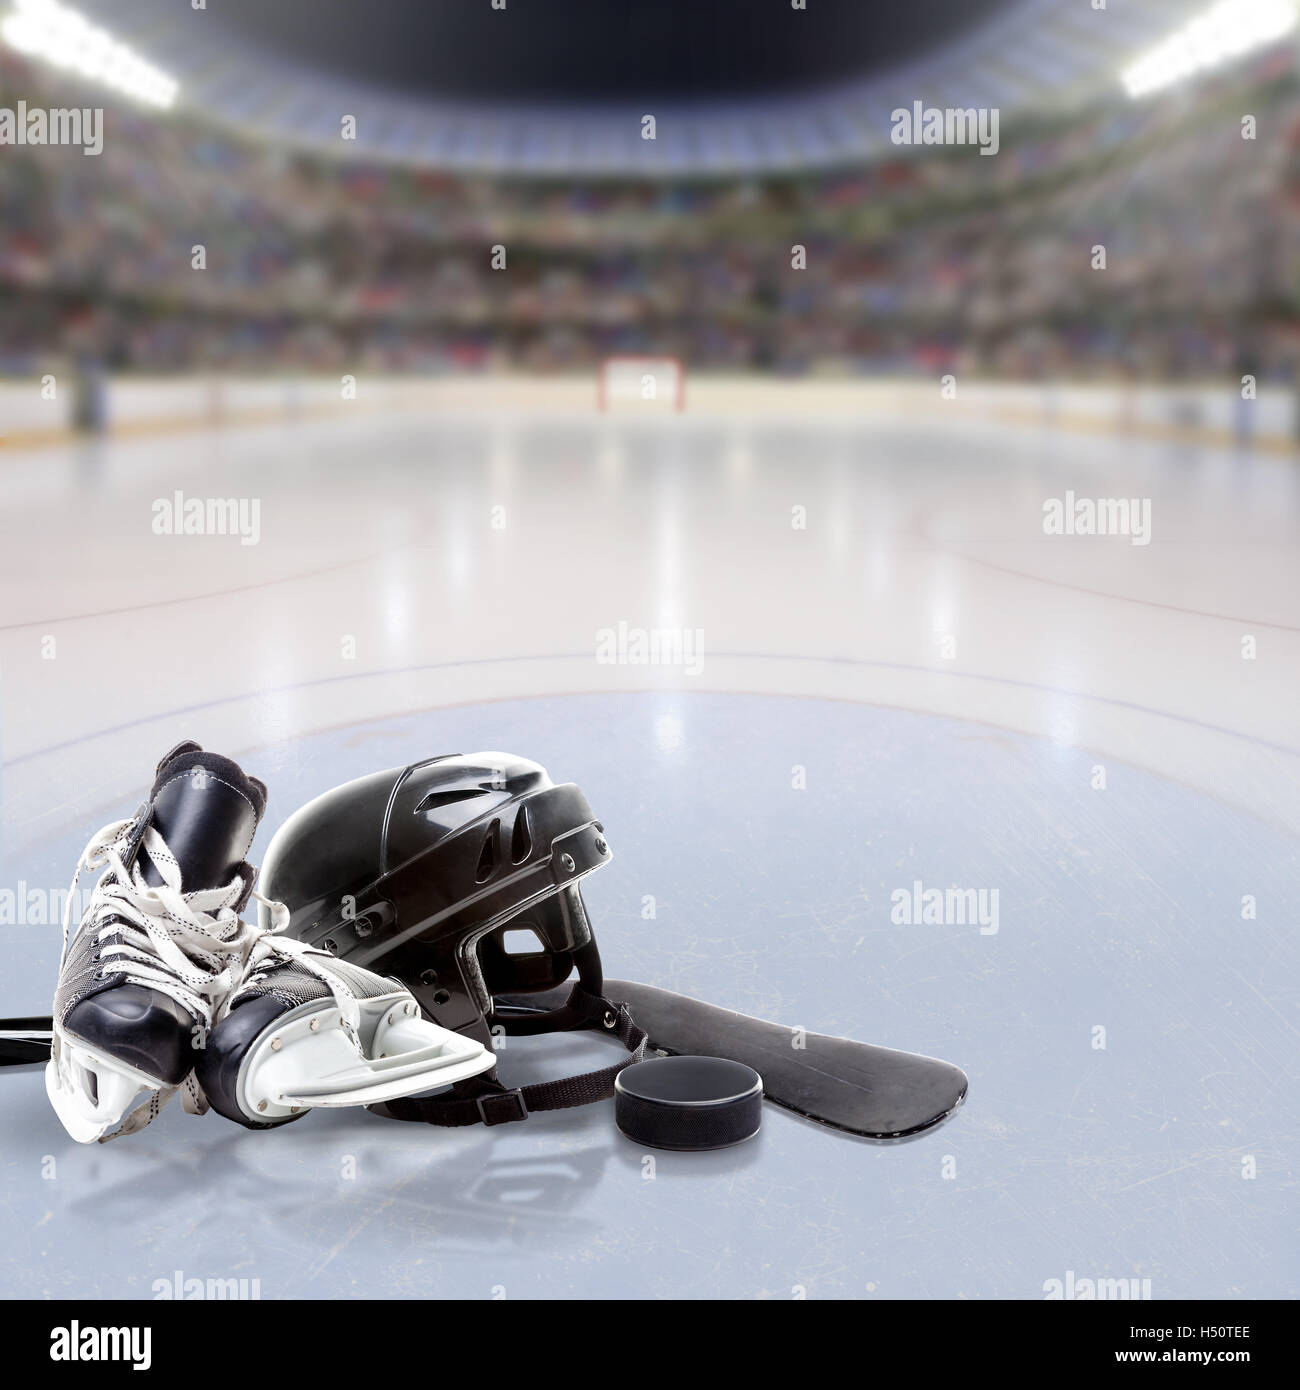 Hockey arena full of fans in the stands with helmet, skates, stick and puck on ice and copy space. Deliberate focus - Stock Image